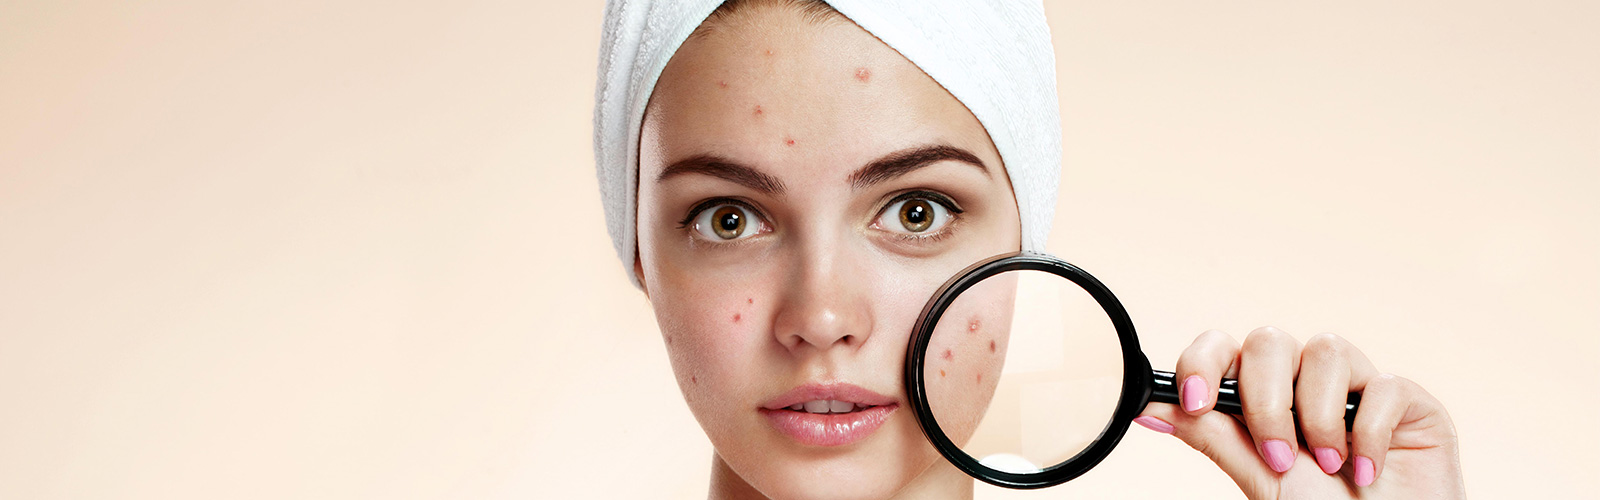 Treatment for Acne in Westlake area